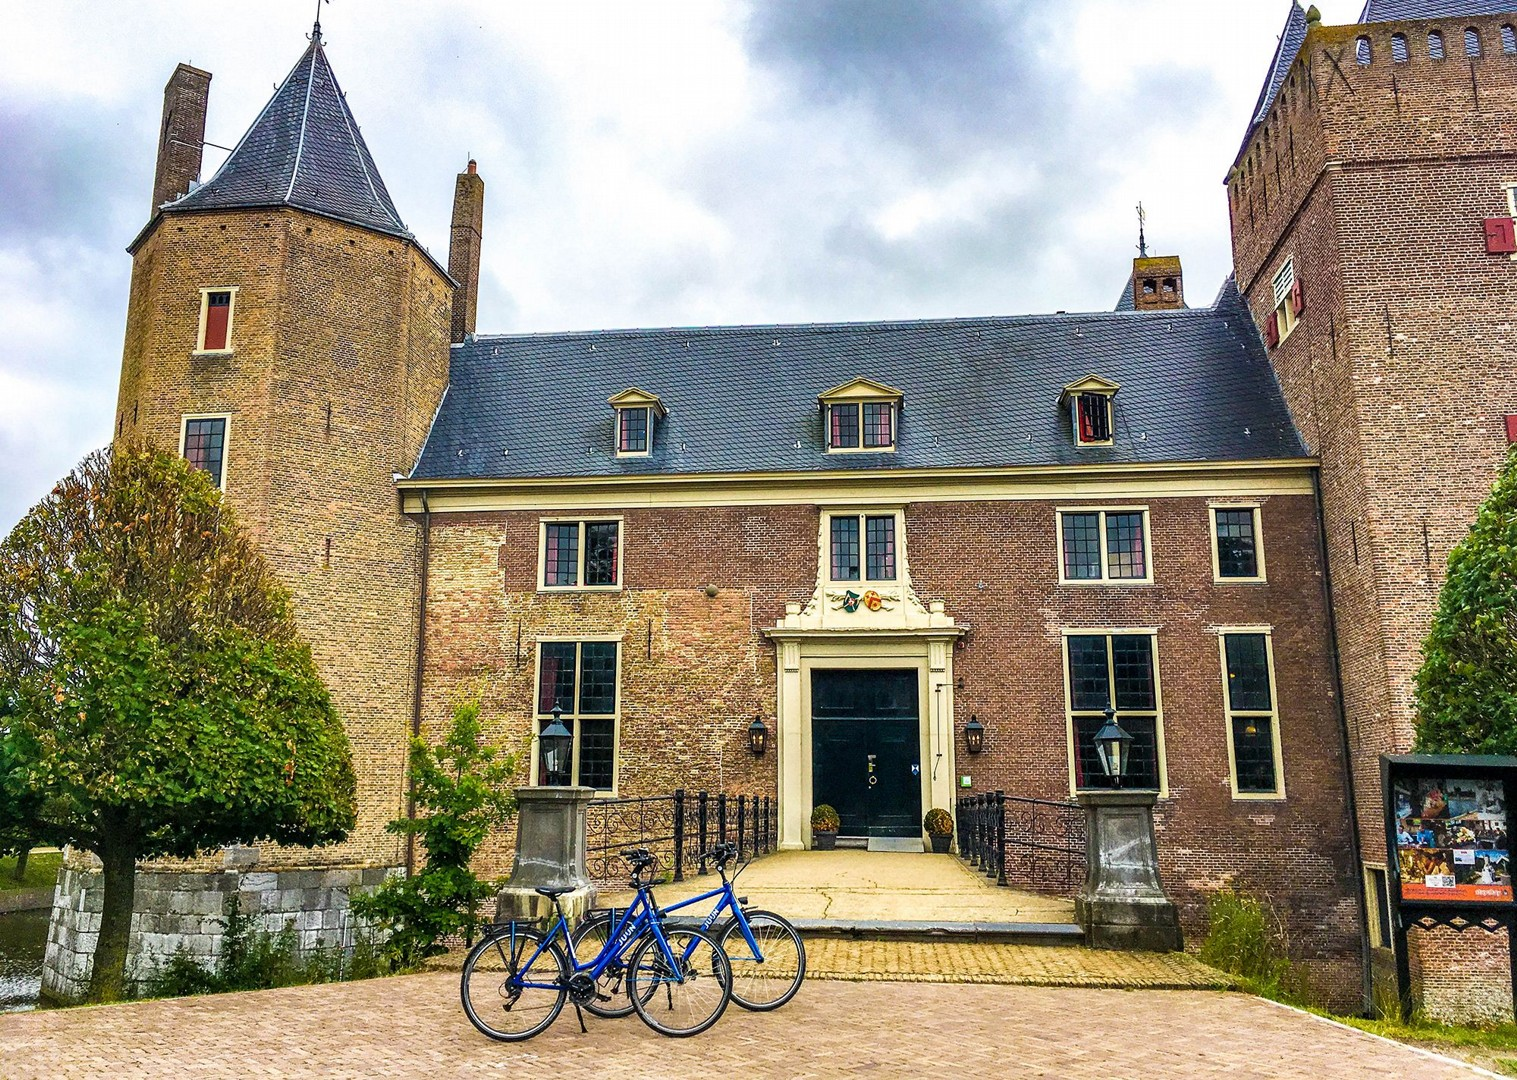 dutch-discoverer-canals-and-castles-holiday-family-cycling-self-guided.jpg - NEW! Holland - Dutch Discoverer - Canals and Castles - Family Cycling